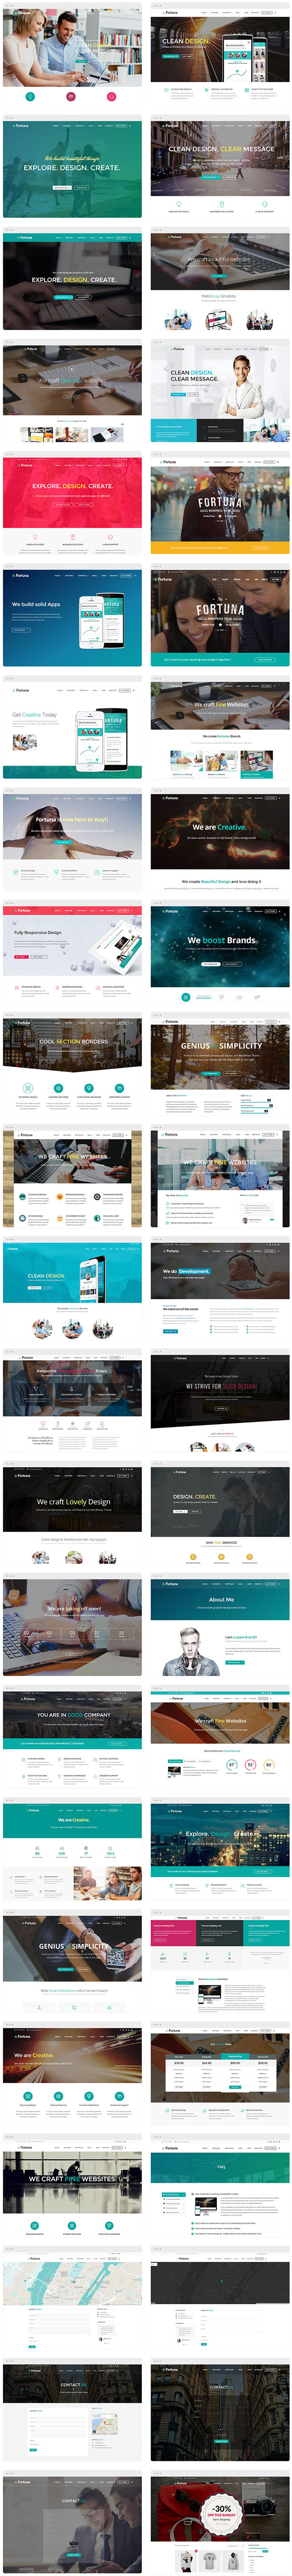 Fortuna - Responsive Multi-Purpose WordPress Theme - 14